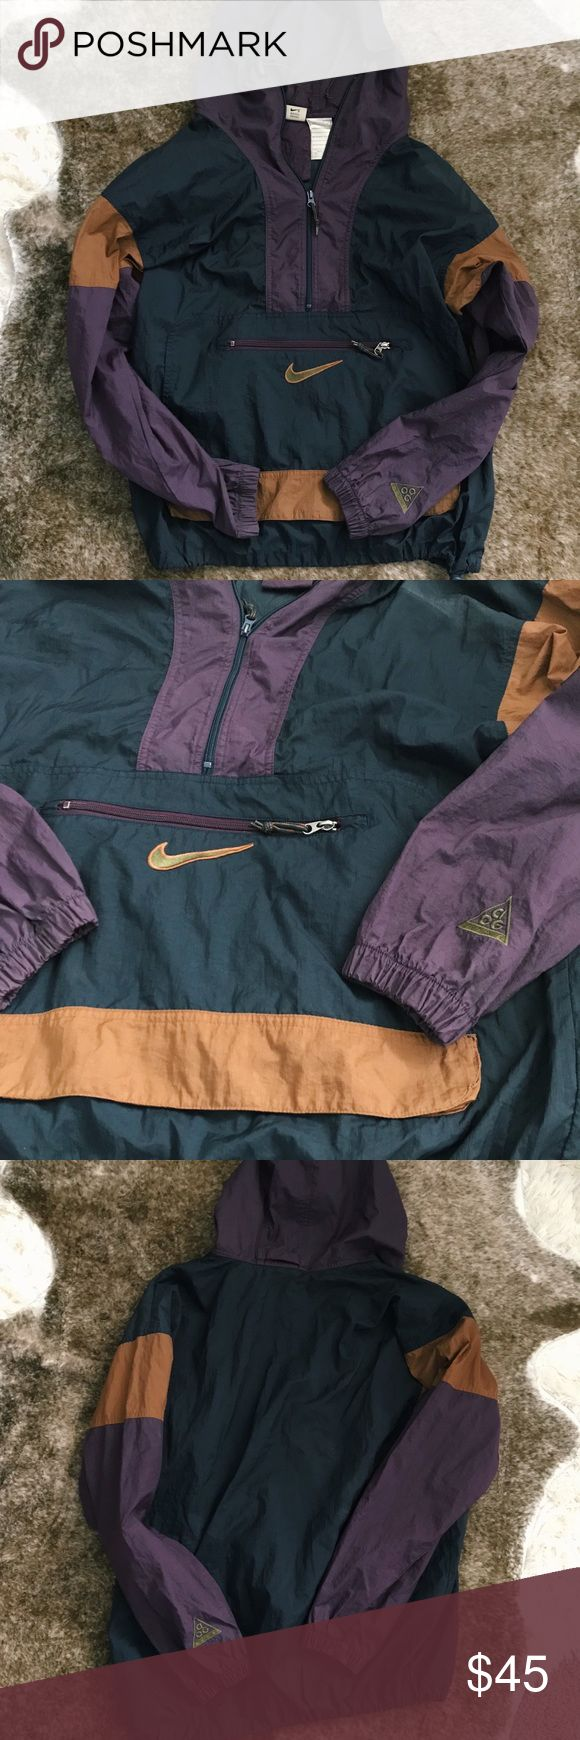 *ALREADY SOLD* Amazing Vintage Nike Windbreaker Incredible Vintage Nike ACG Half-Zip windbreaker hoodie in amazing condition!! Drawstring waist, hood, and zippers are all in tact! A men's size Small, but can definitely fit a Medium. Selling for $45!✨ #nike #vintage #jacket #windbreaker #hoodie Nike ACG Jackets & Coats Windbreakers